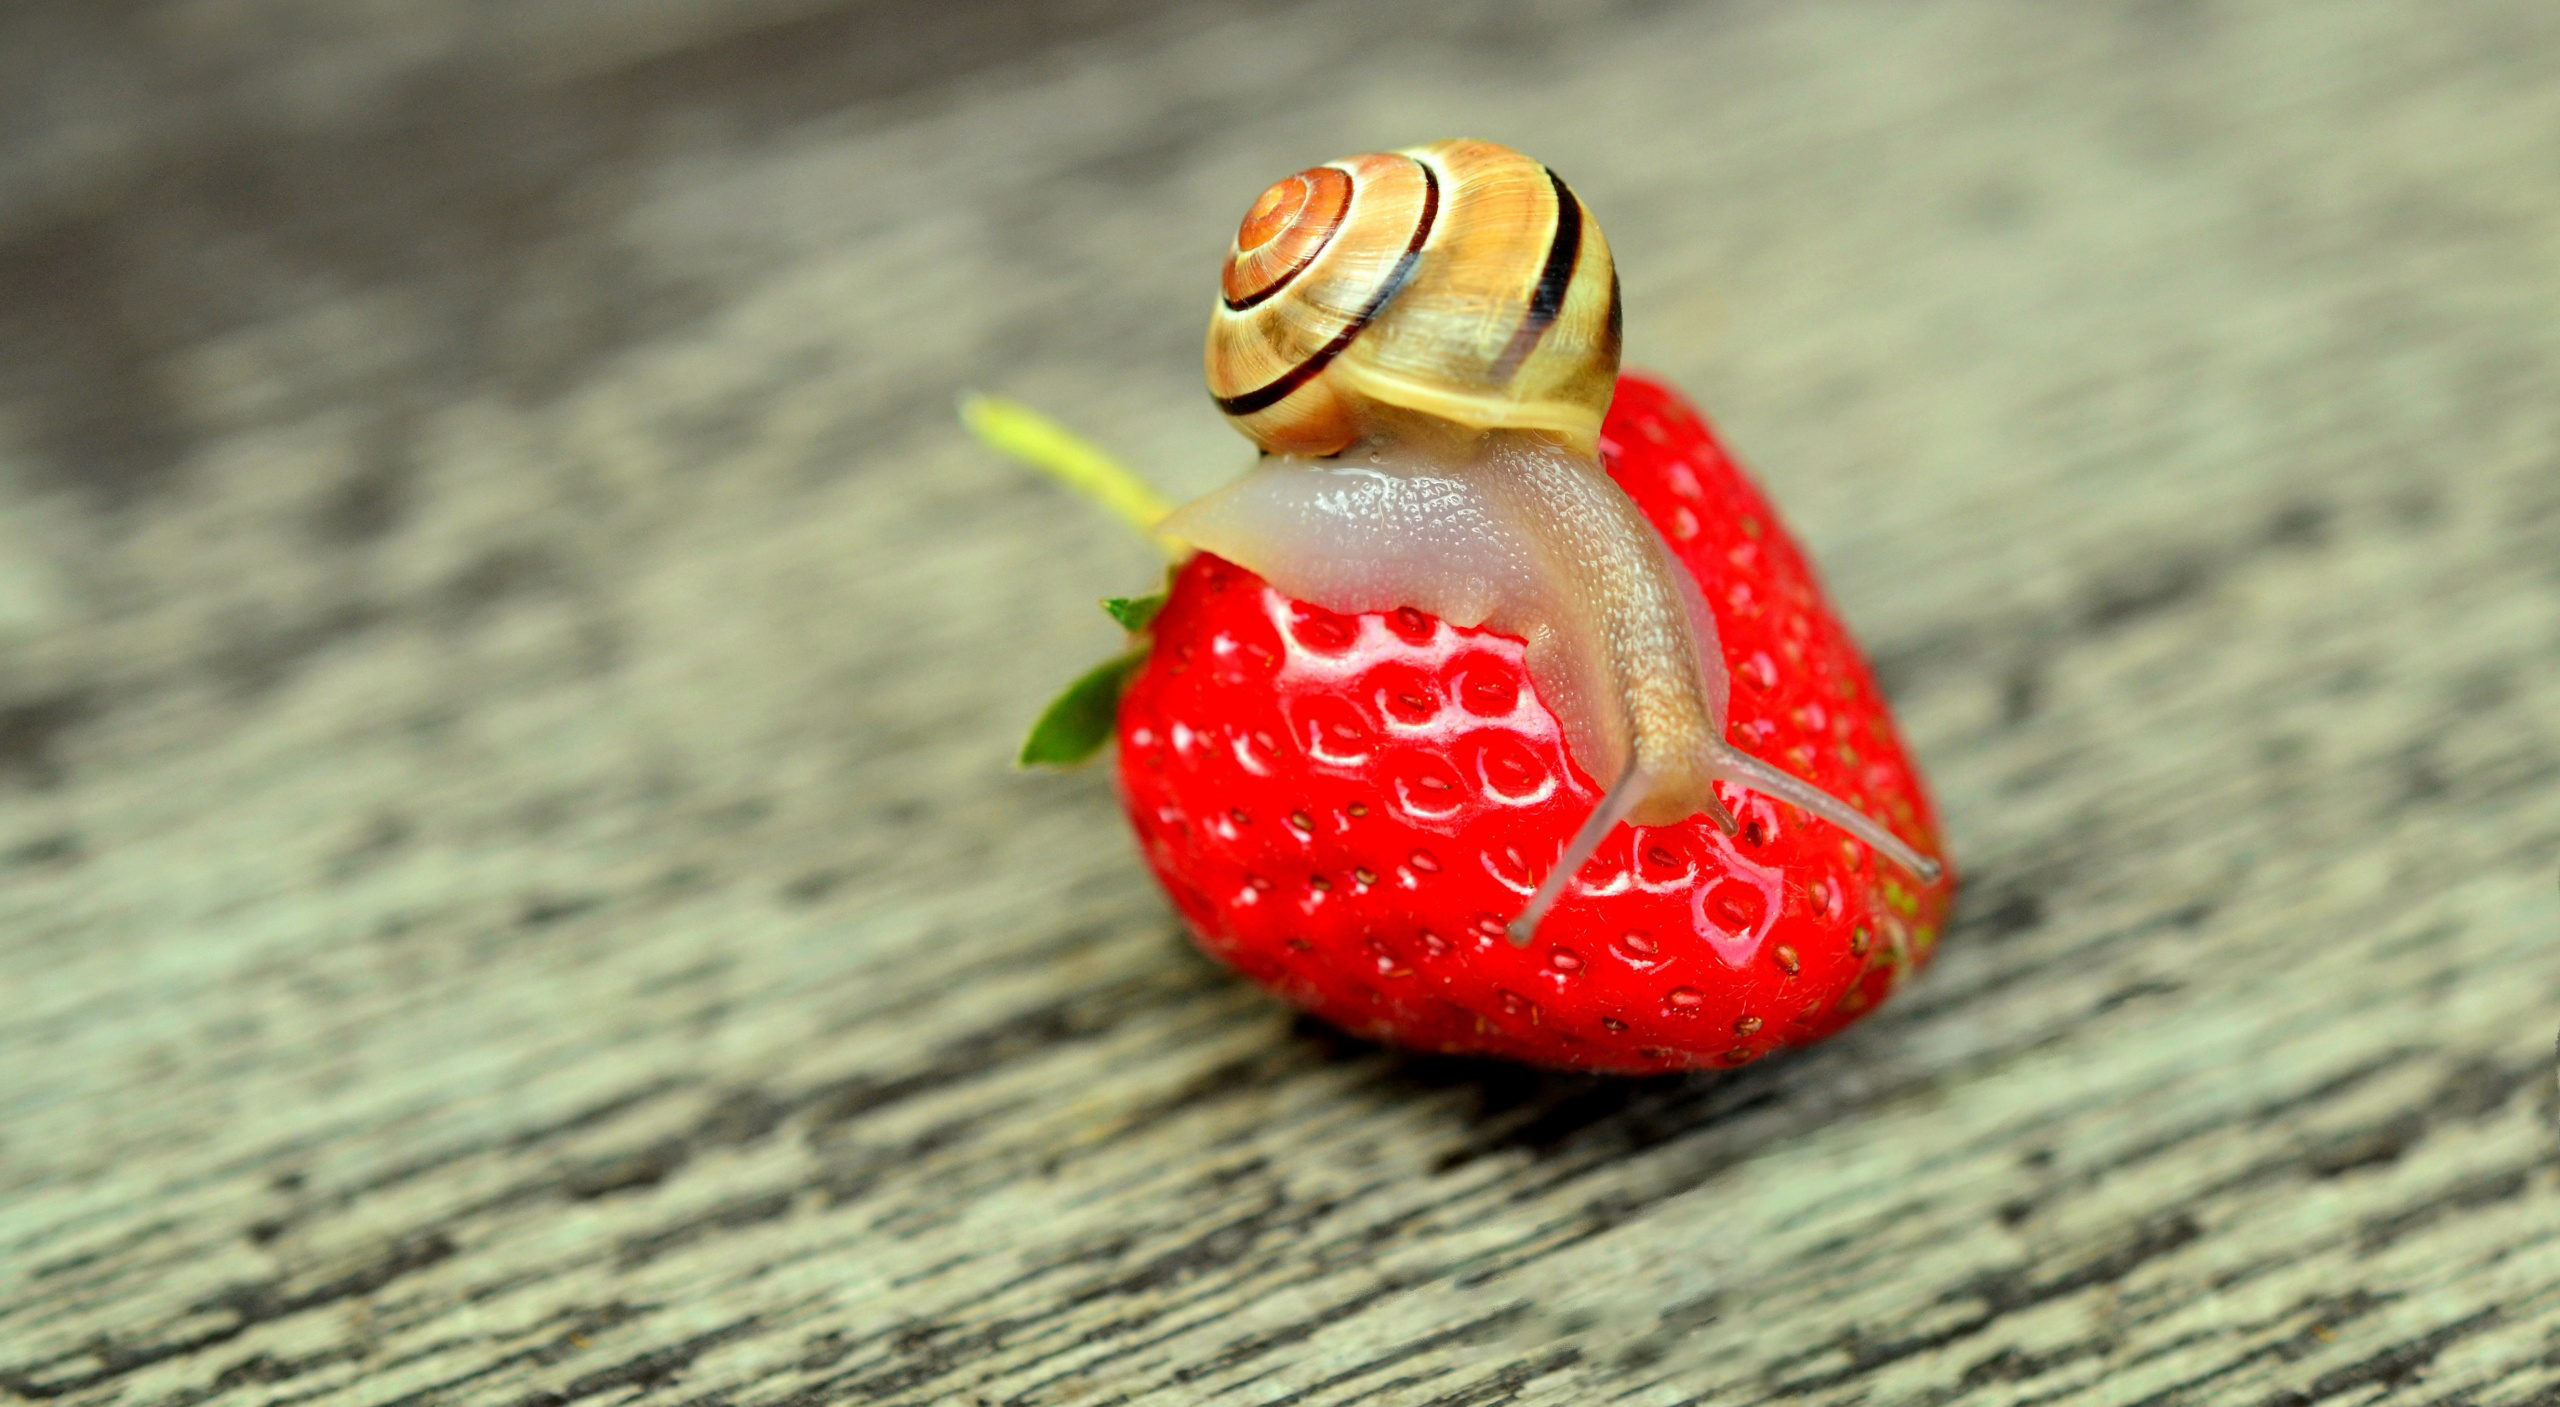 Strawberry and snail 54437